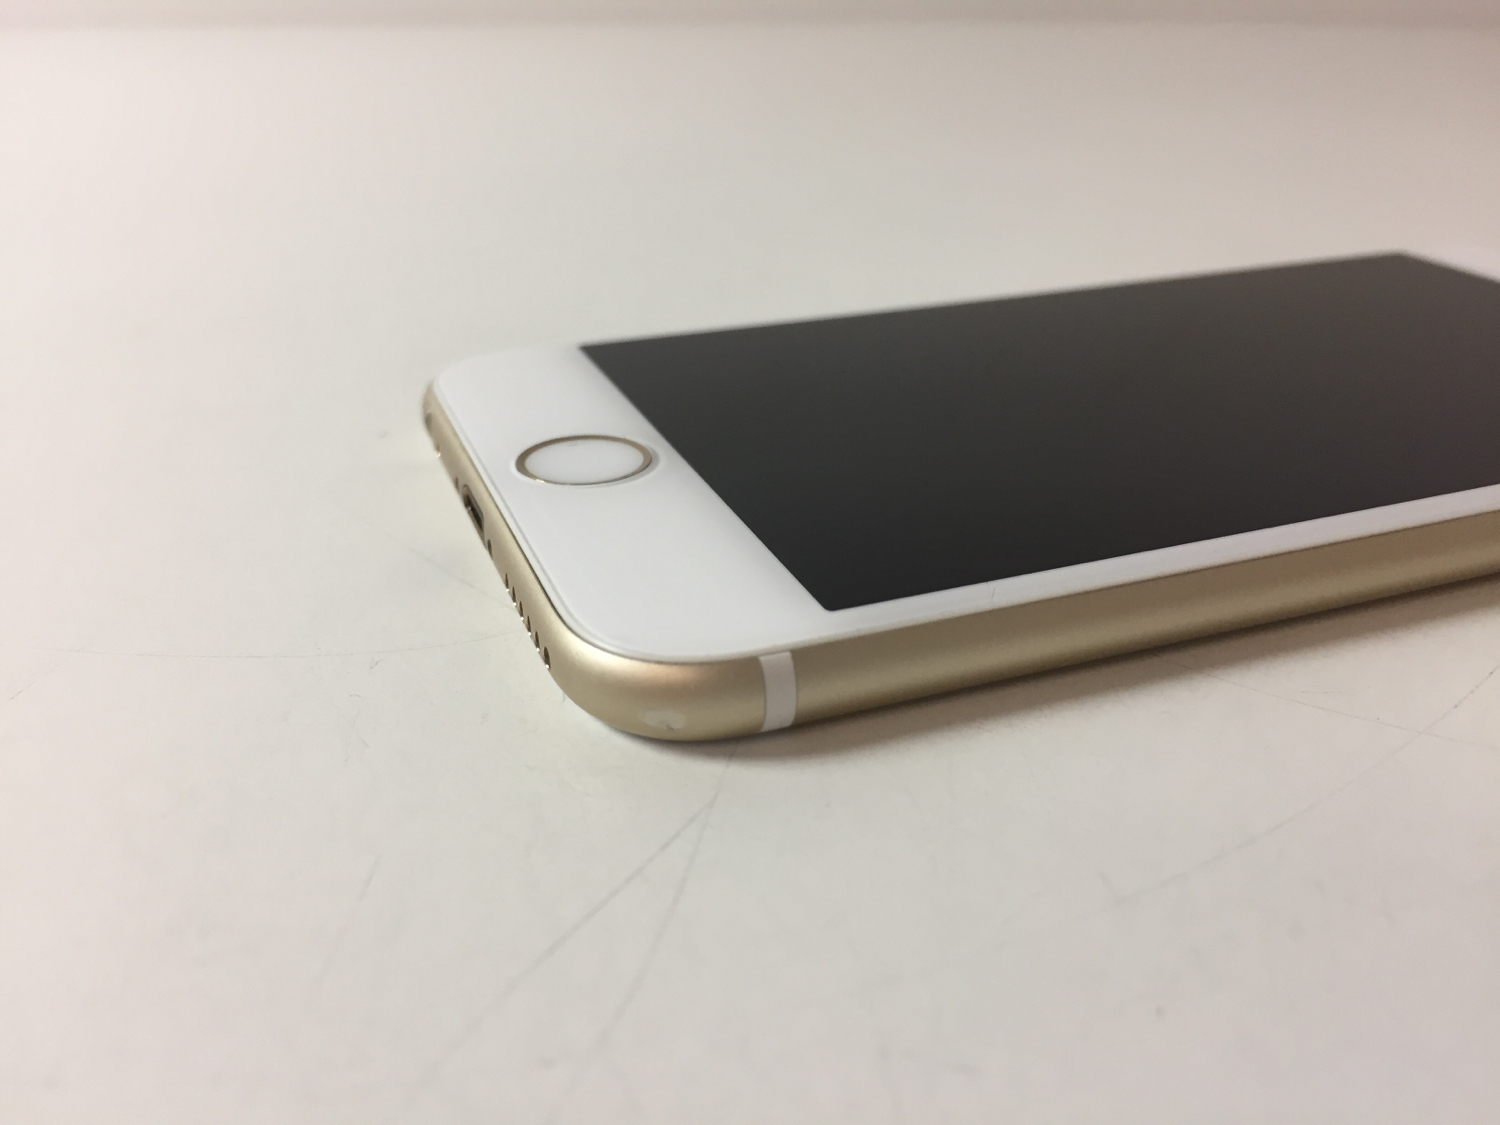 iPhone 6S 16GB, 16 GB, Gold, bild 6